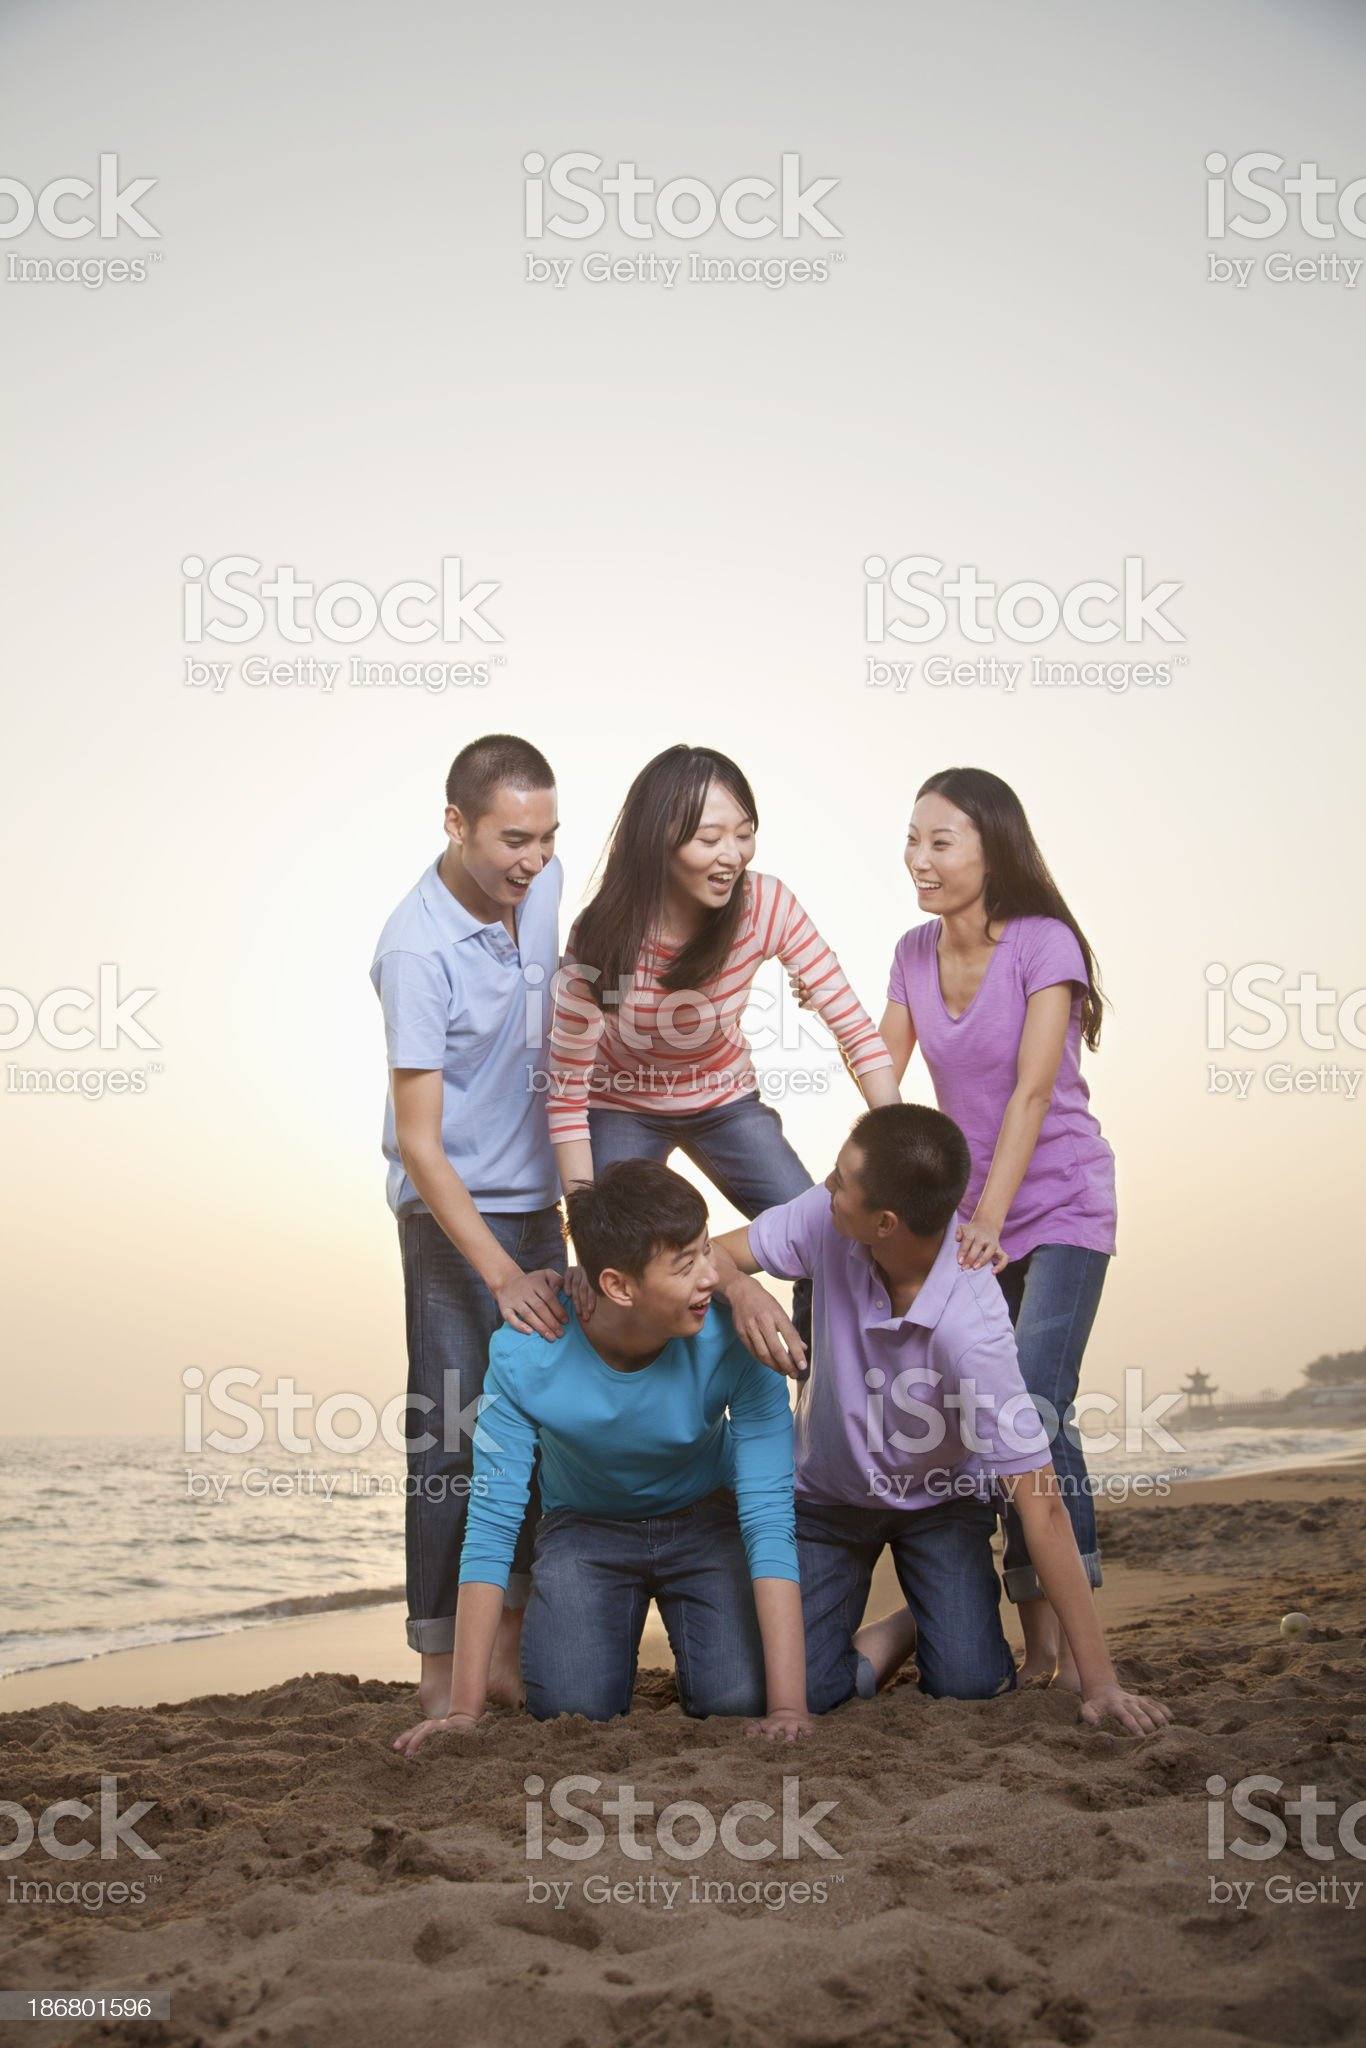 Group of Friends Making Human Pyramid on the Beach royalty-free stock photo